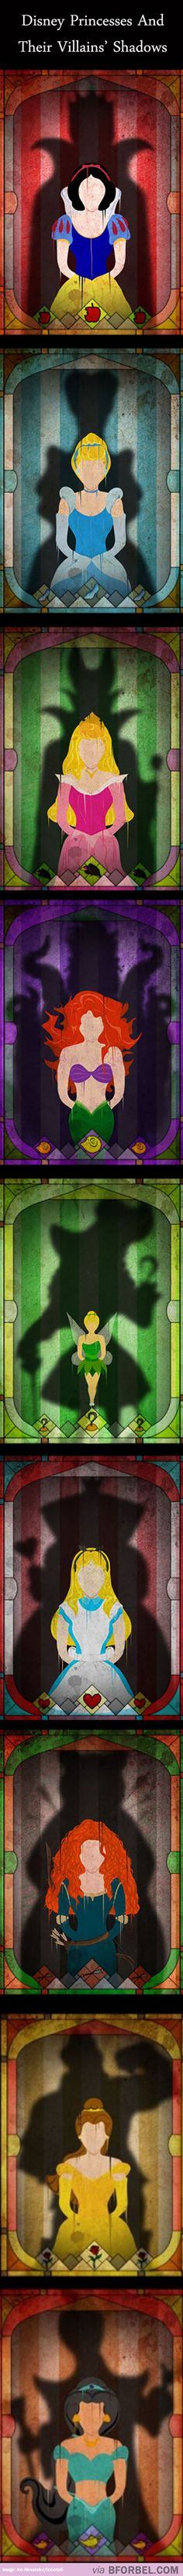 9 Disney Princesses Haunted By The Shadows Of Their Villains…I love this!